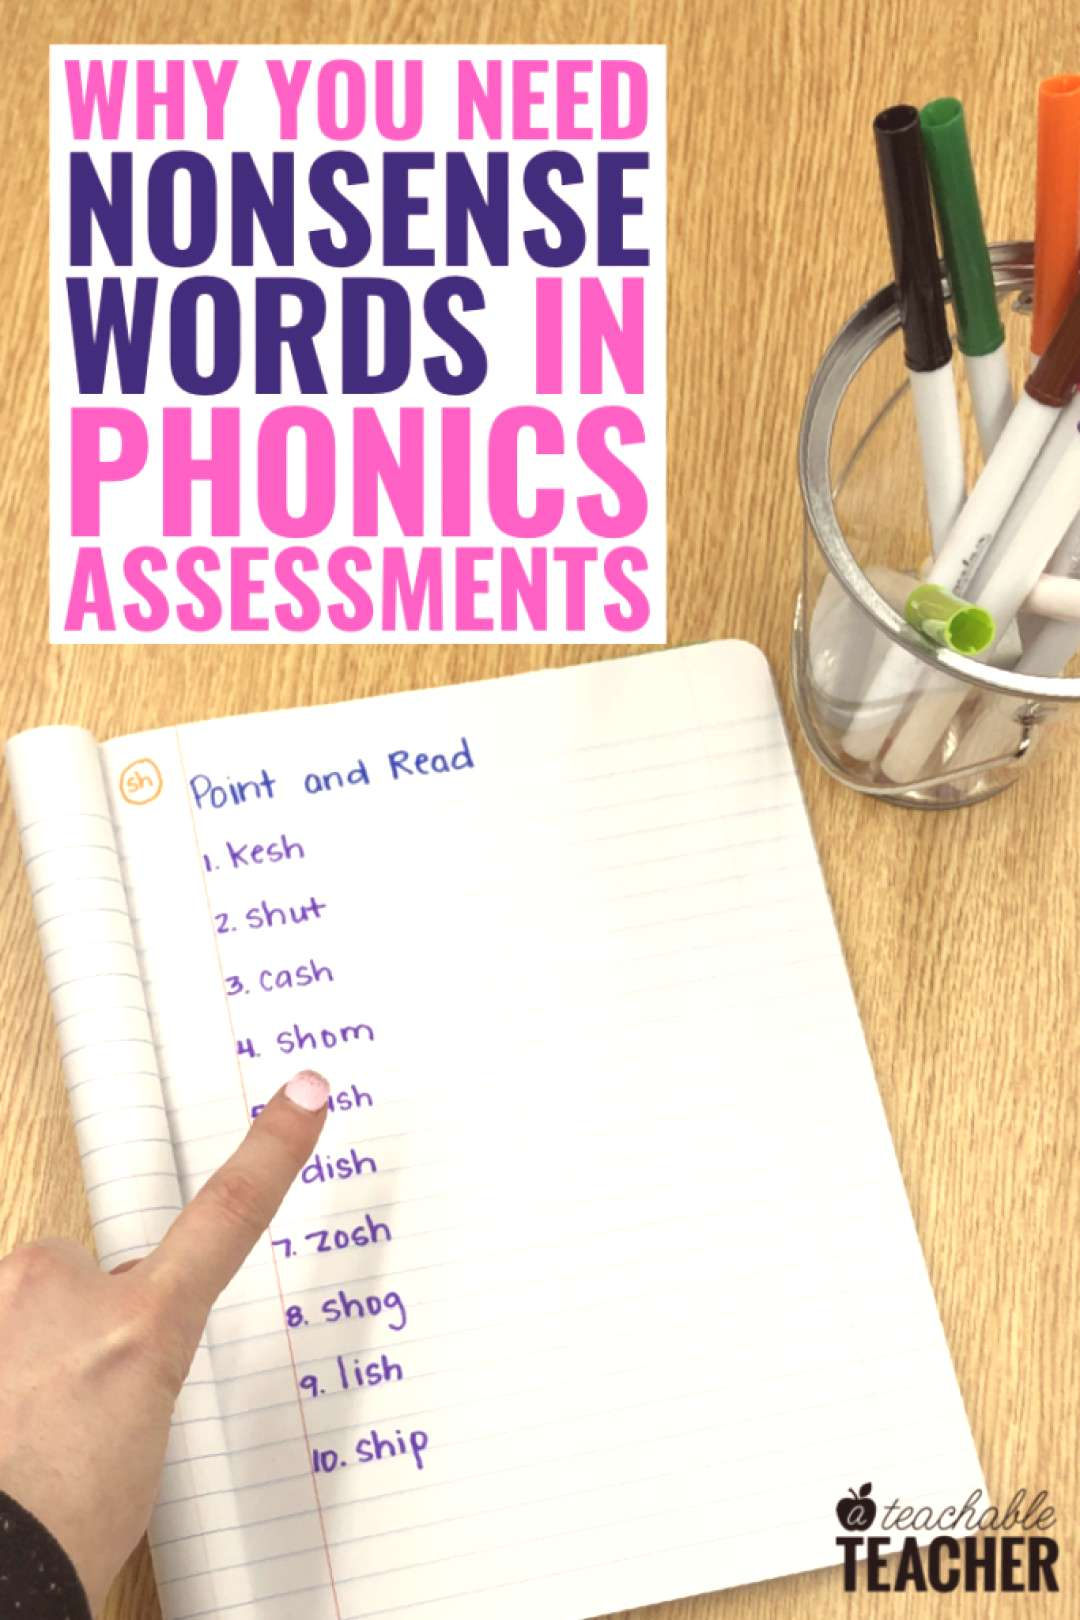 Why You Need Nonsense Words in Phonics Assessments Find two compelling reasons teachers should use